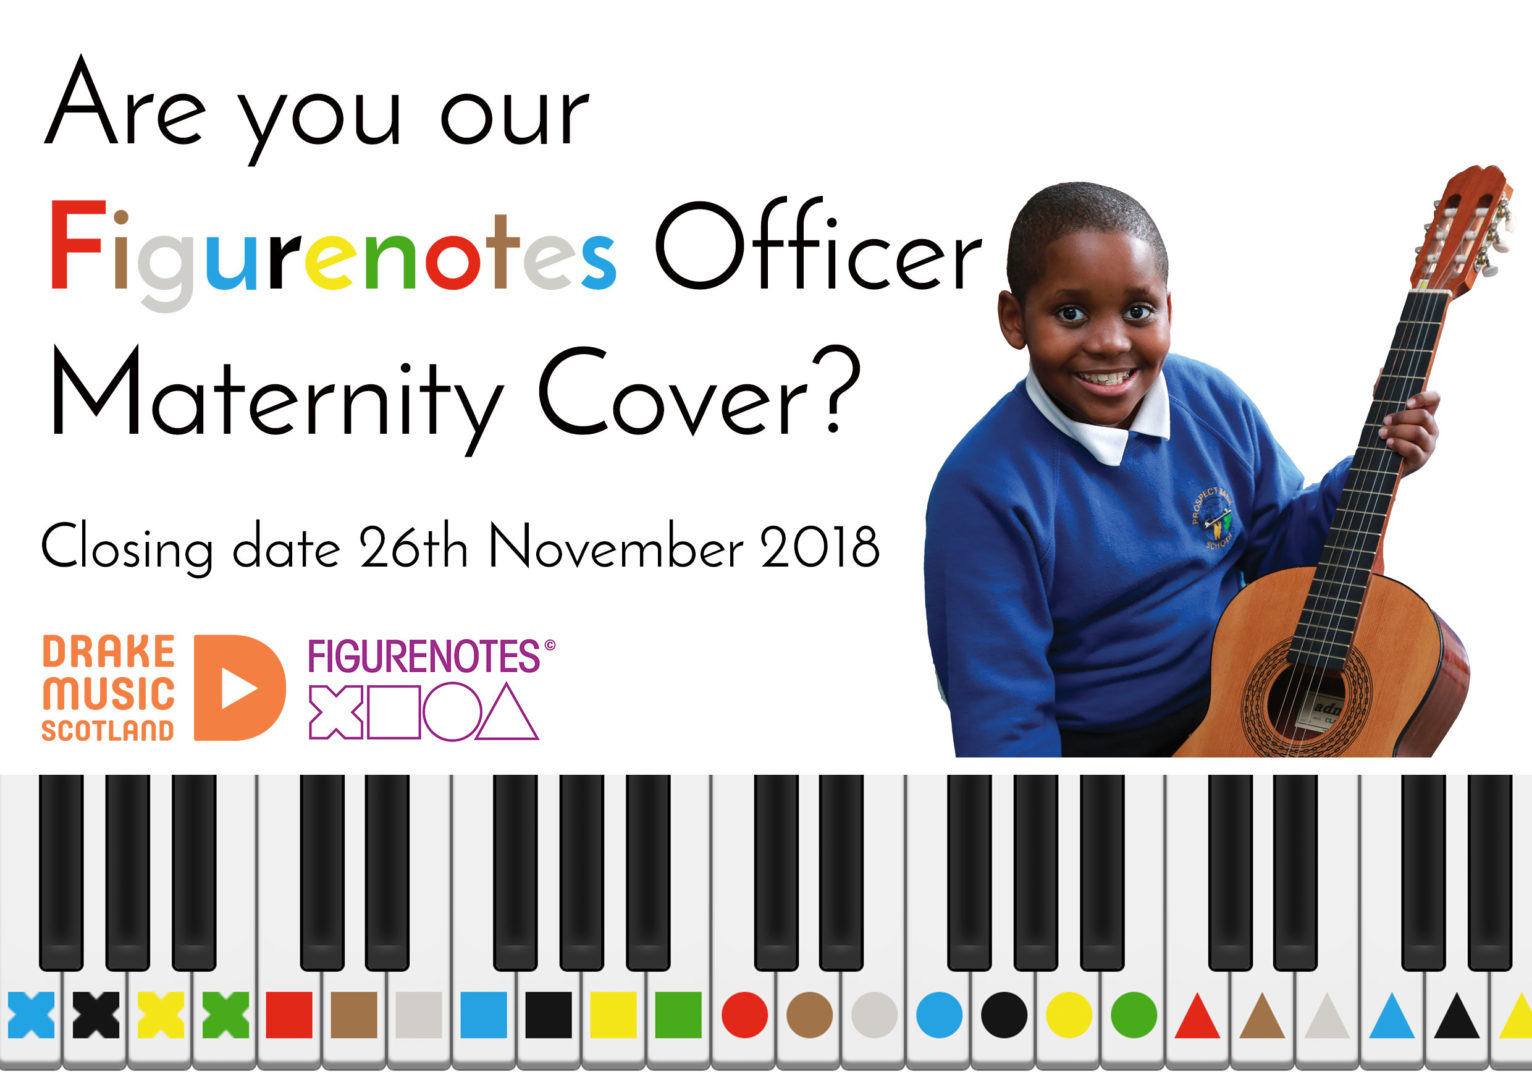 Are you our Figurenotes Officer Maternity Cover?